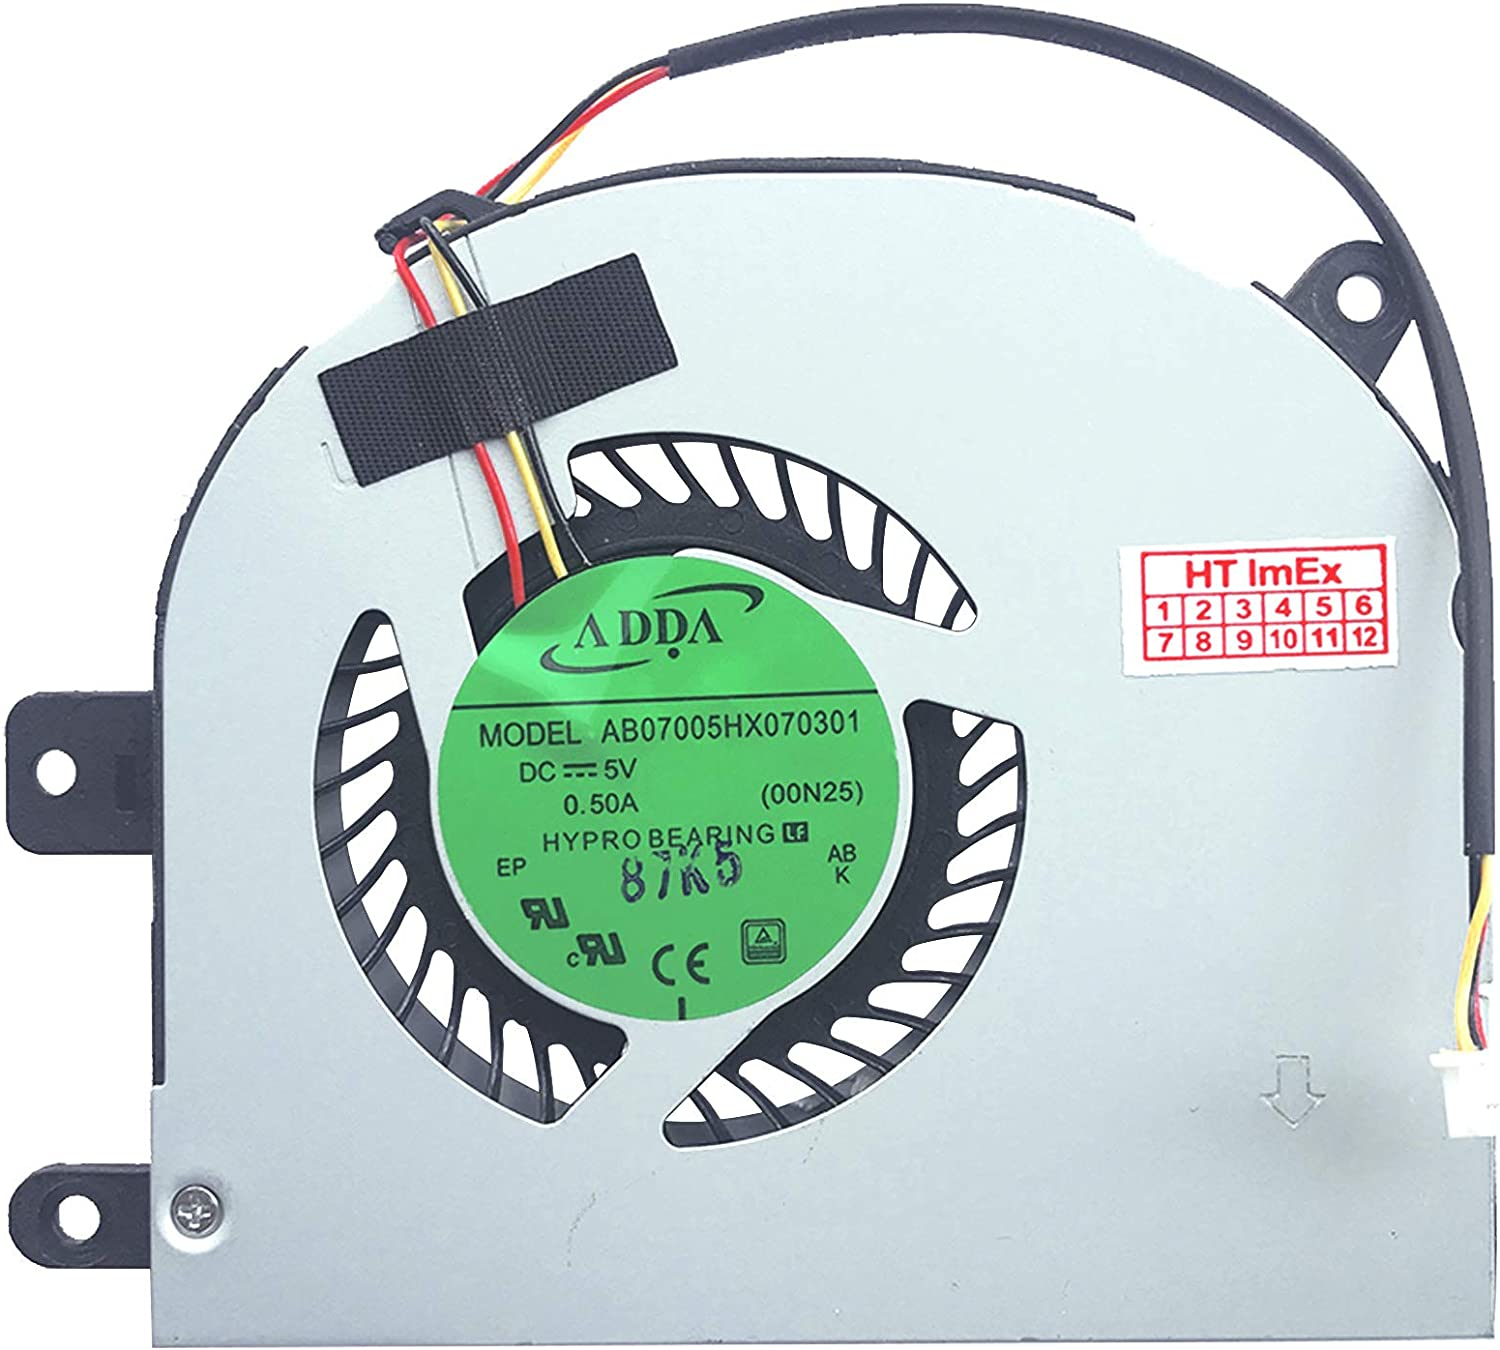 P//N: 6-31-N2503-102 P//N: 6-31-N2503-102-1 Model: DFS531005FL0T-FH30 HT-ImEx Fan Cooler Compatible with Model: AB07005HX070301-00N25